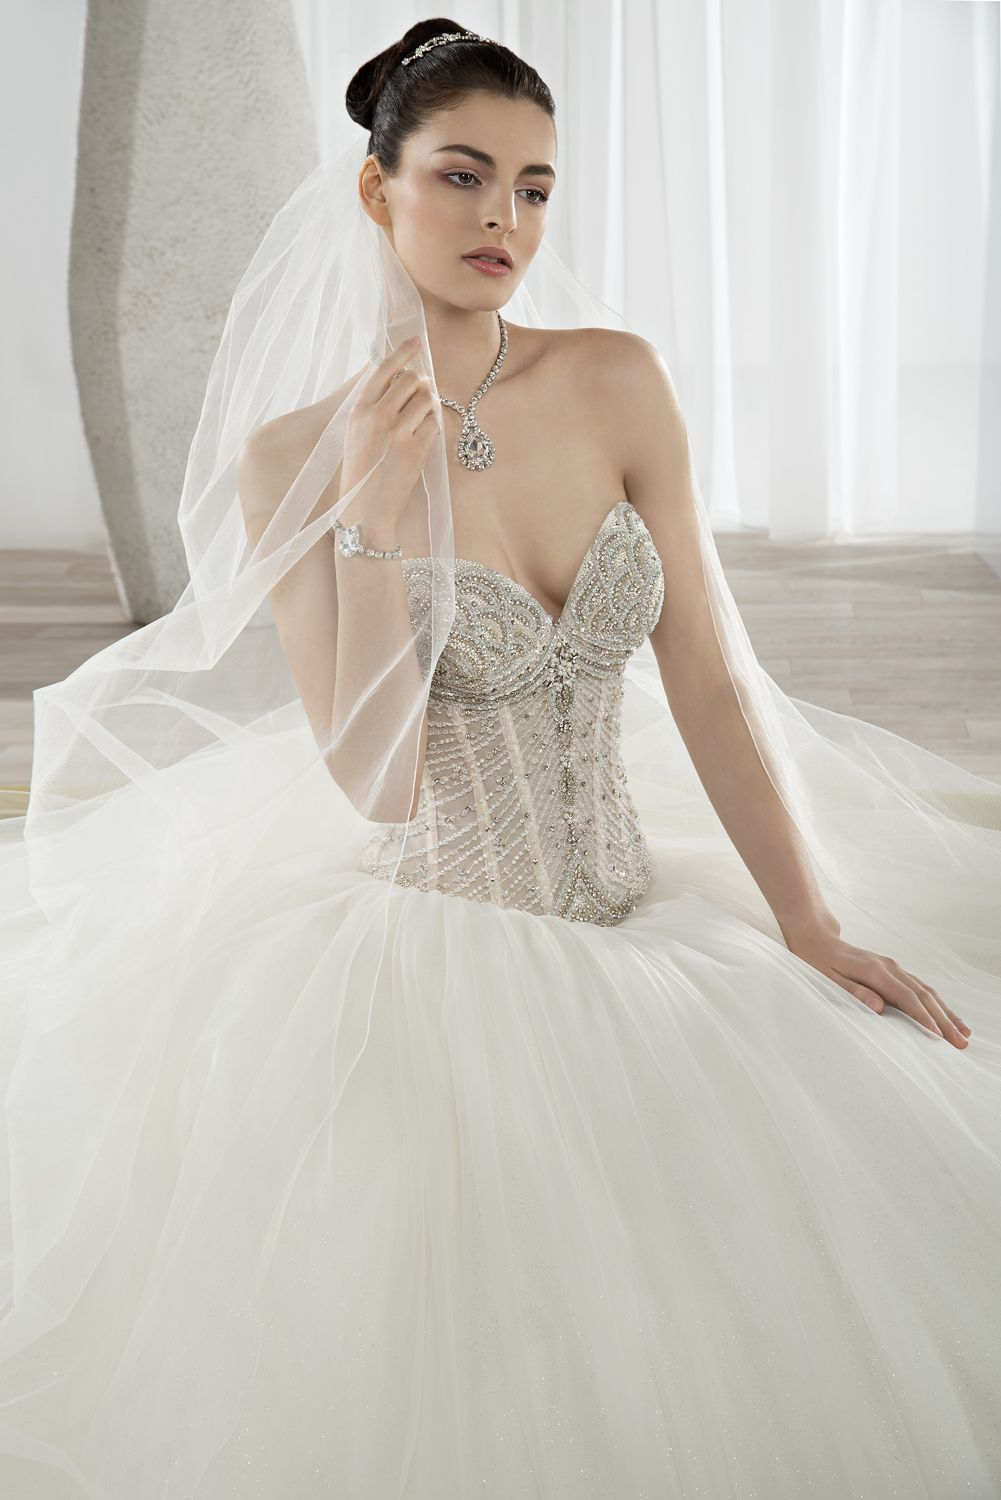 5f4004366ece4 ... Bridal Gown is Beaded Tulle. Shimmering sweetheart neckline bodice and  voluminous tulle skirt. #DemetriosBride Style 651.